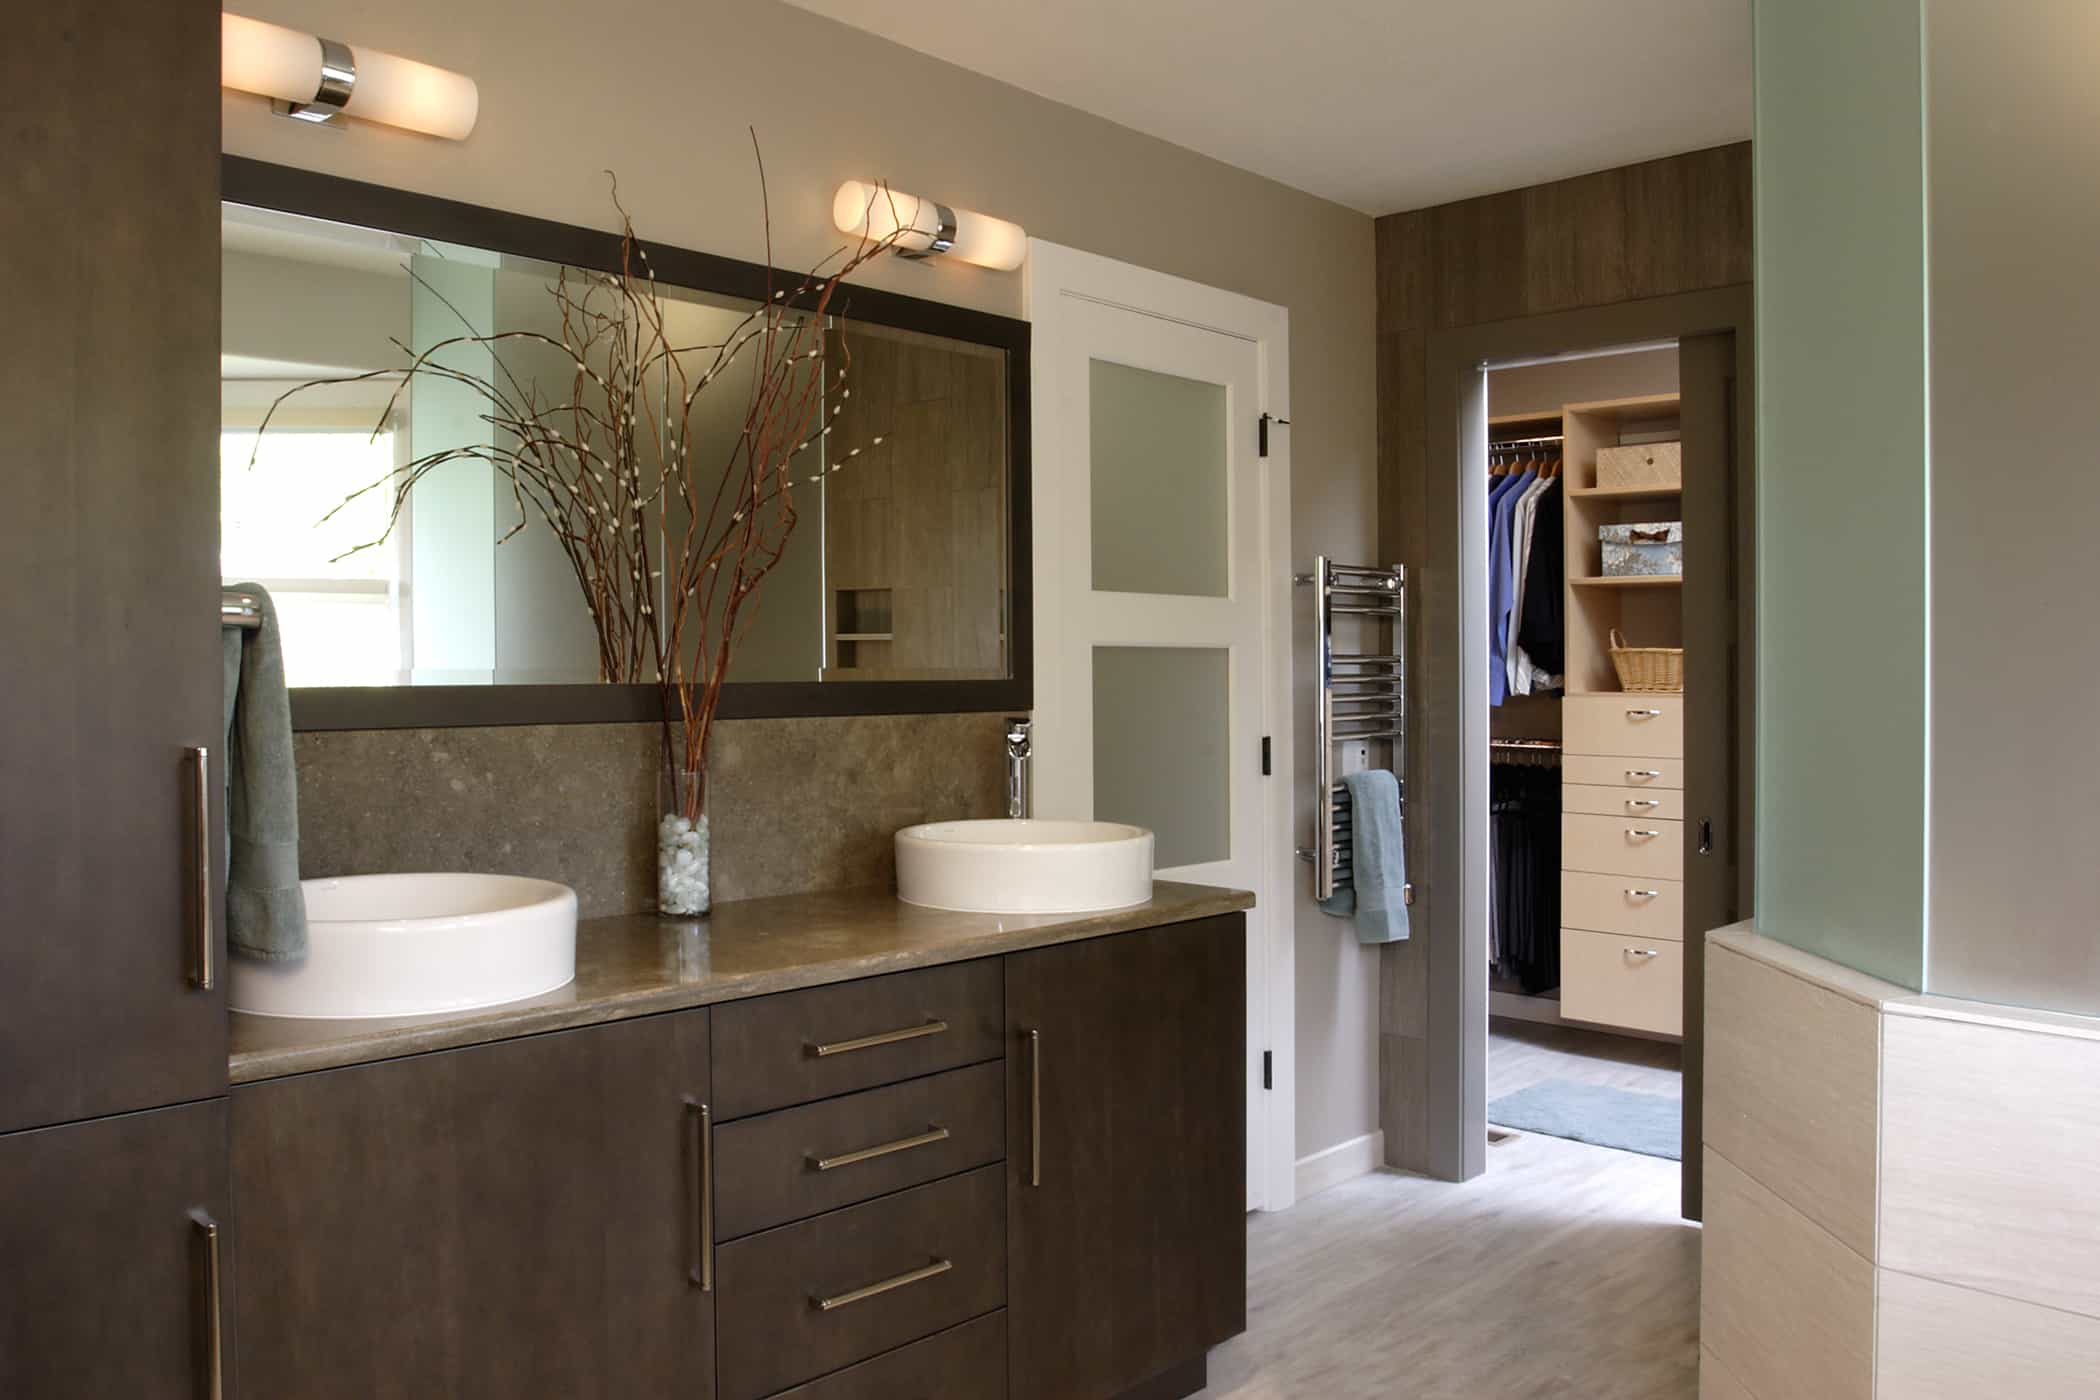 Modern bathroom remodels are a Neil Kelly specialty